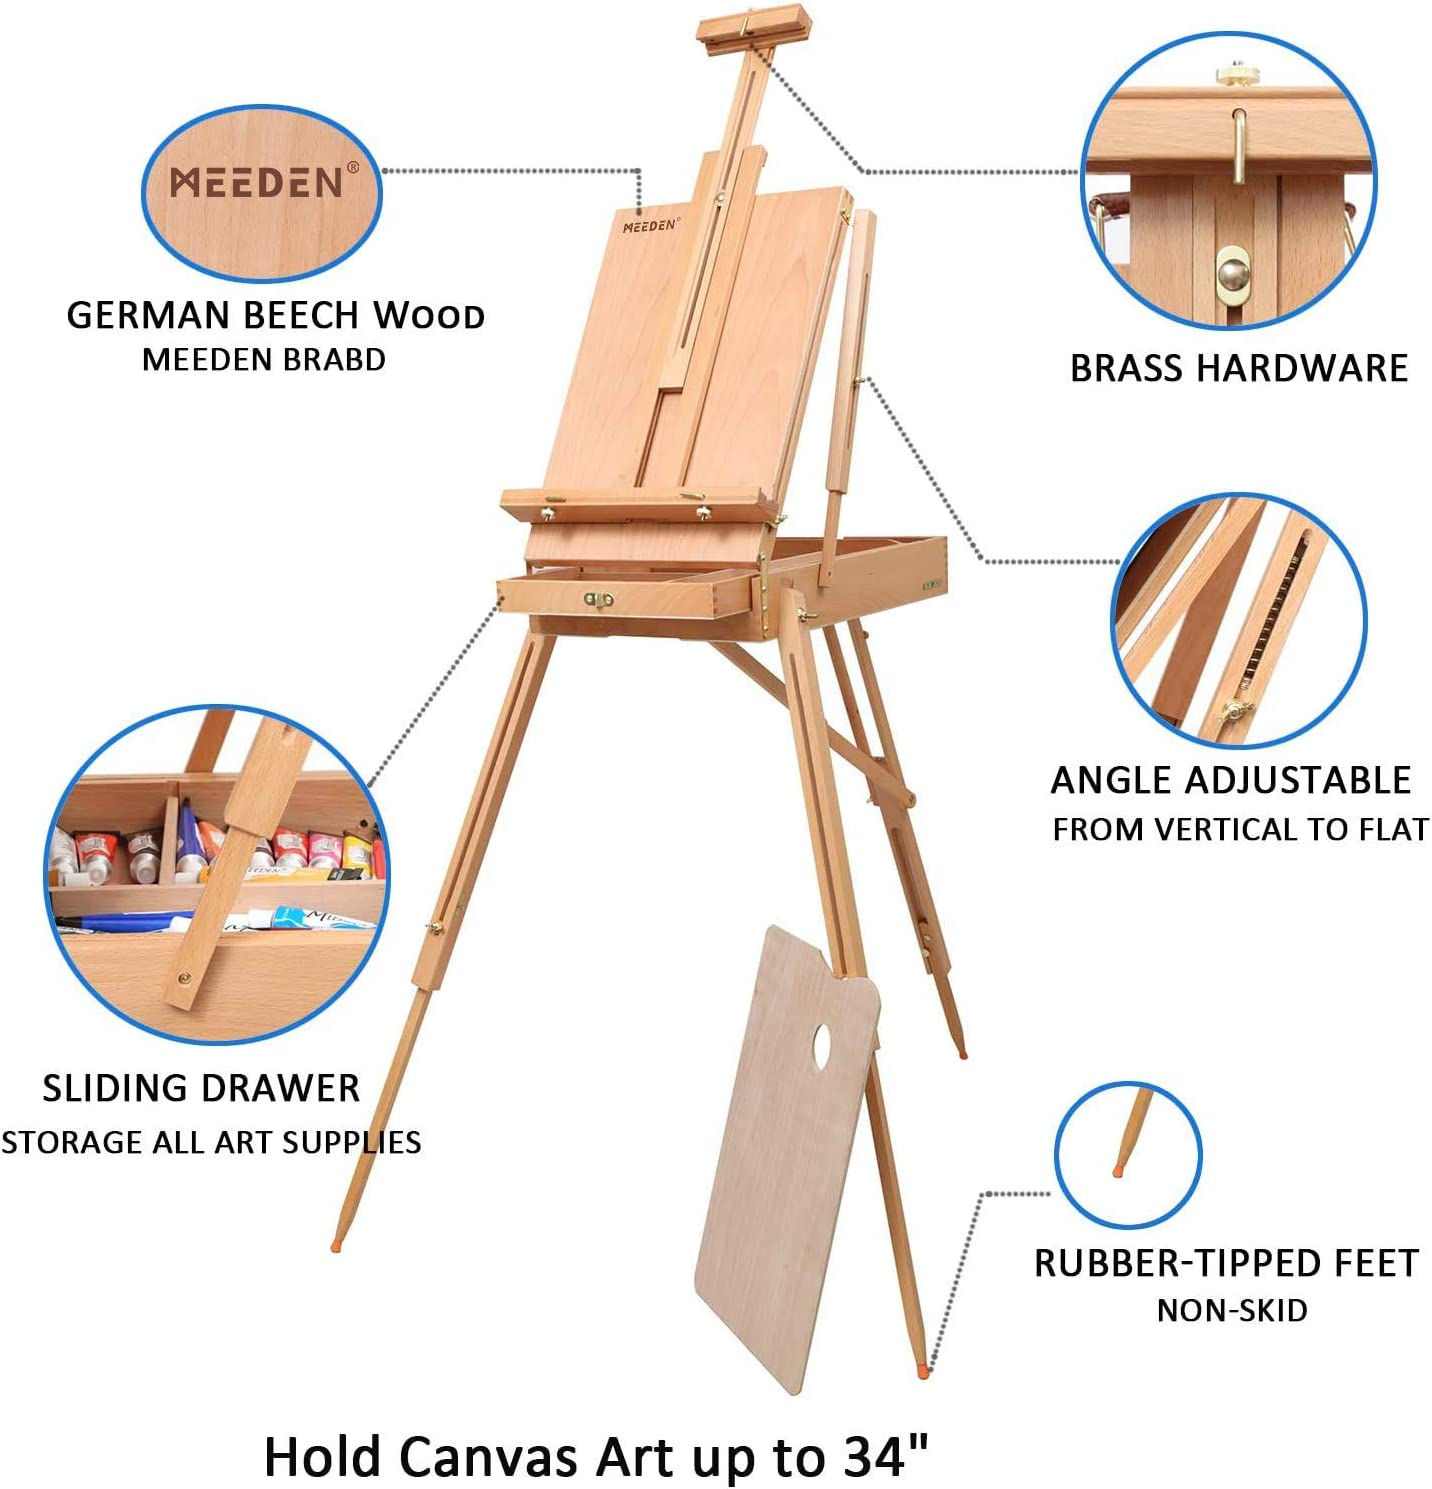 Malset with Wood Frame 150x60 Canvas Adults Painting Kit DIY n-A-0657-d-m